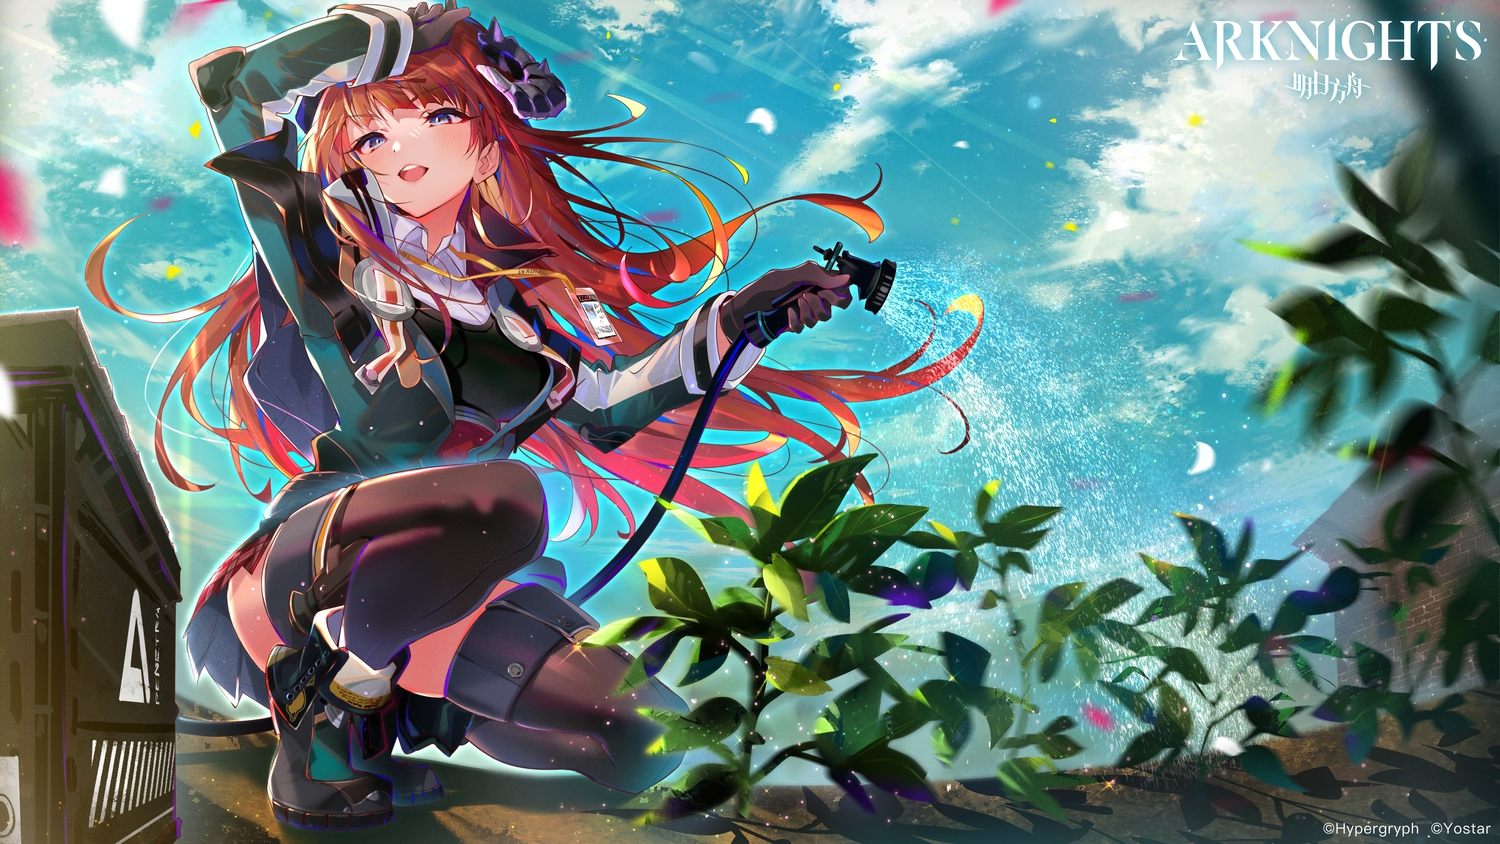 arknights aruterra bagpipe_(arknights) blue_eyes blush boots clouds gloves horns leaves logo long_hair red_hair sky thighhighs water zettai_ryouiki